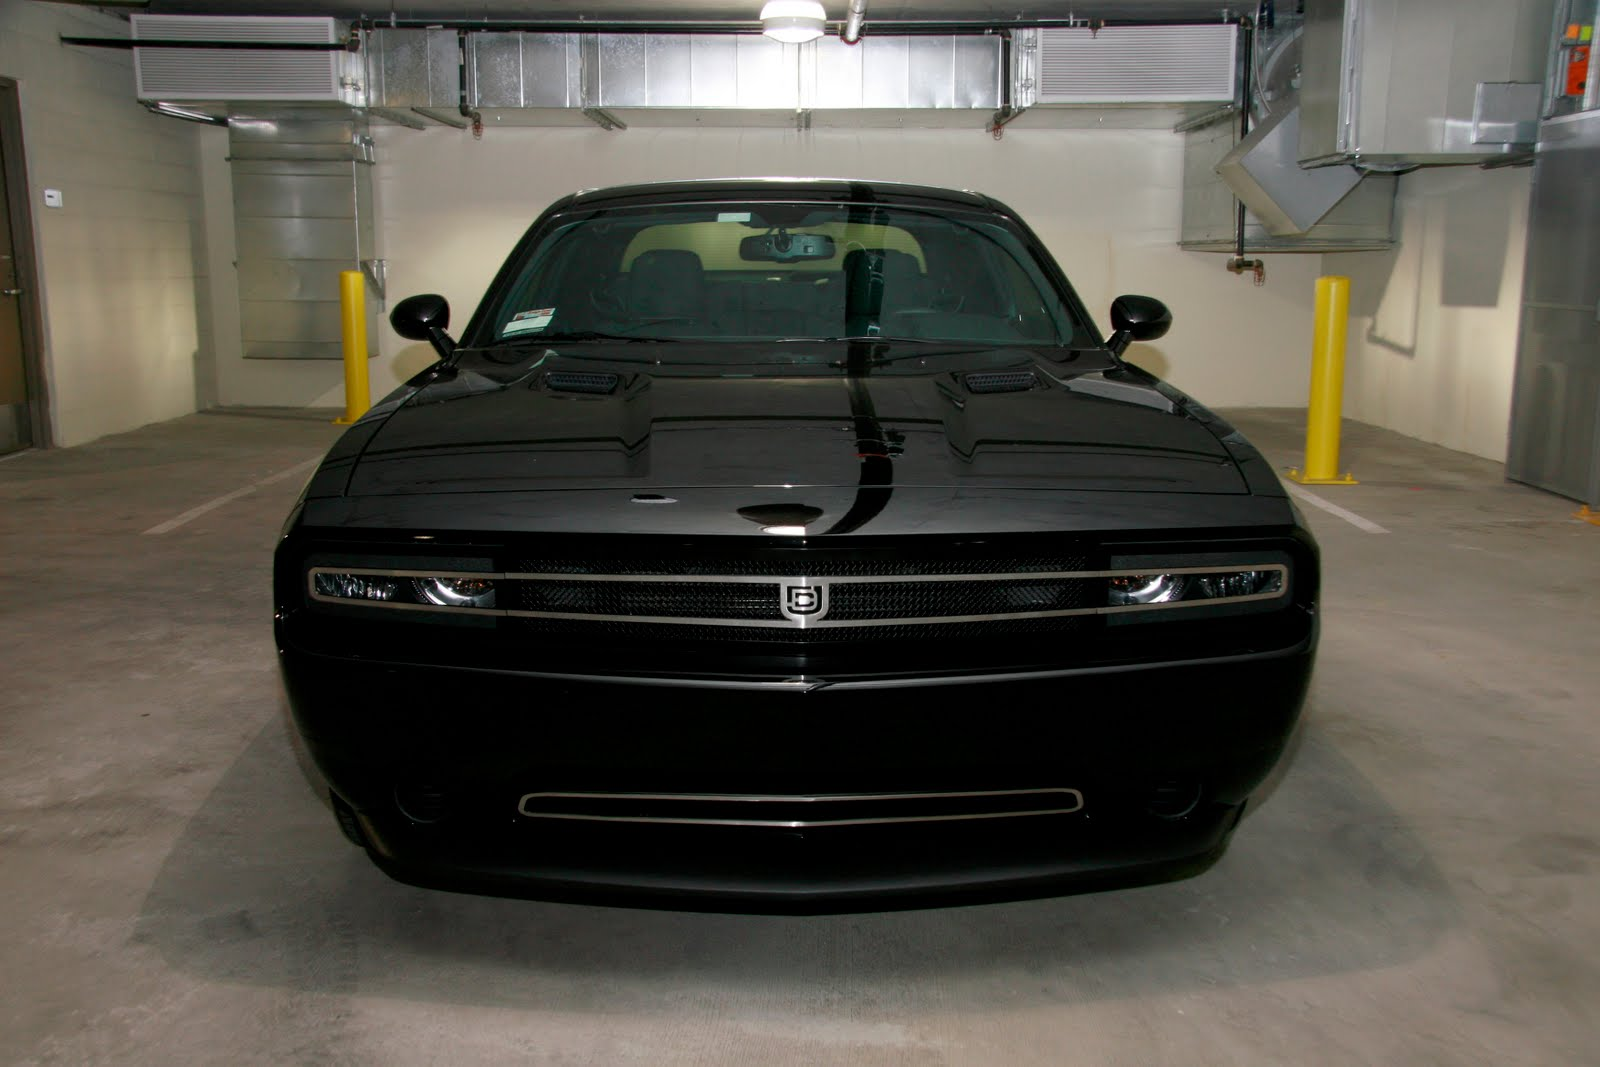 Have you all seen this grille page 2 dodge challenger forum challenger srt8 forums